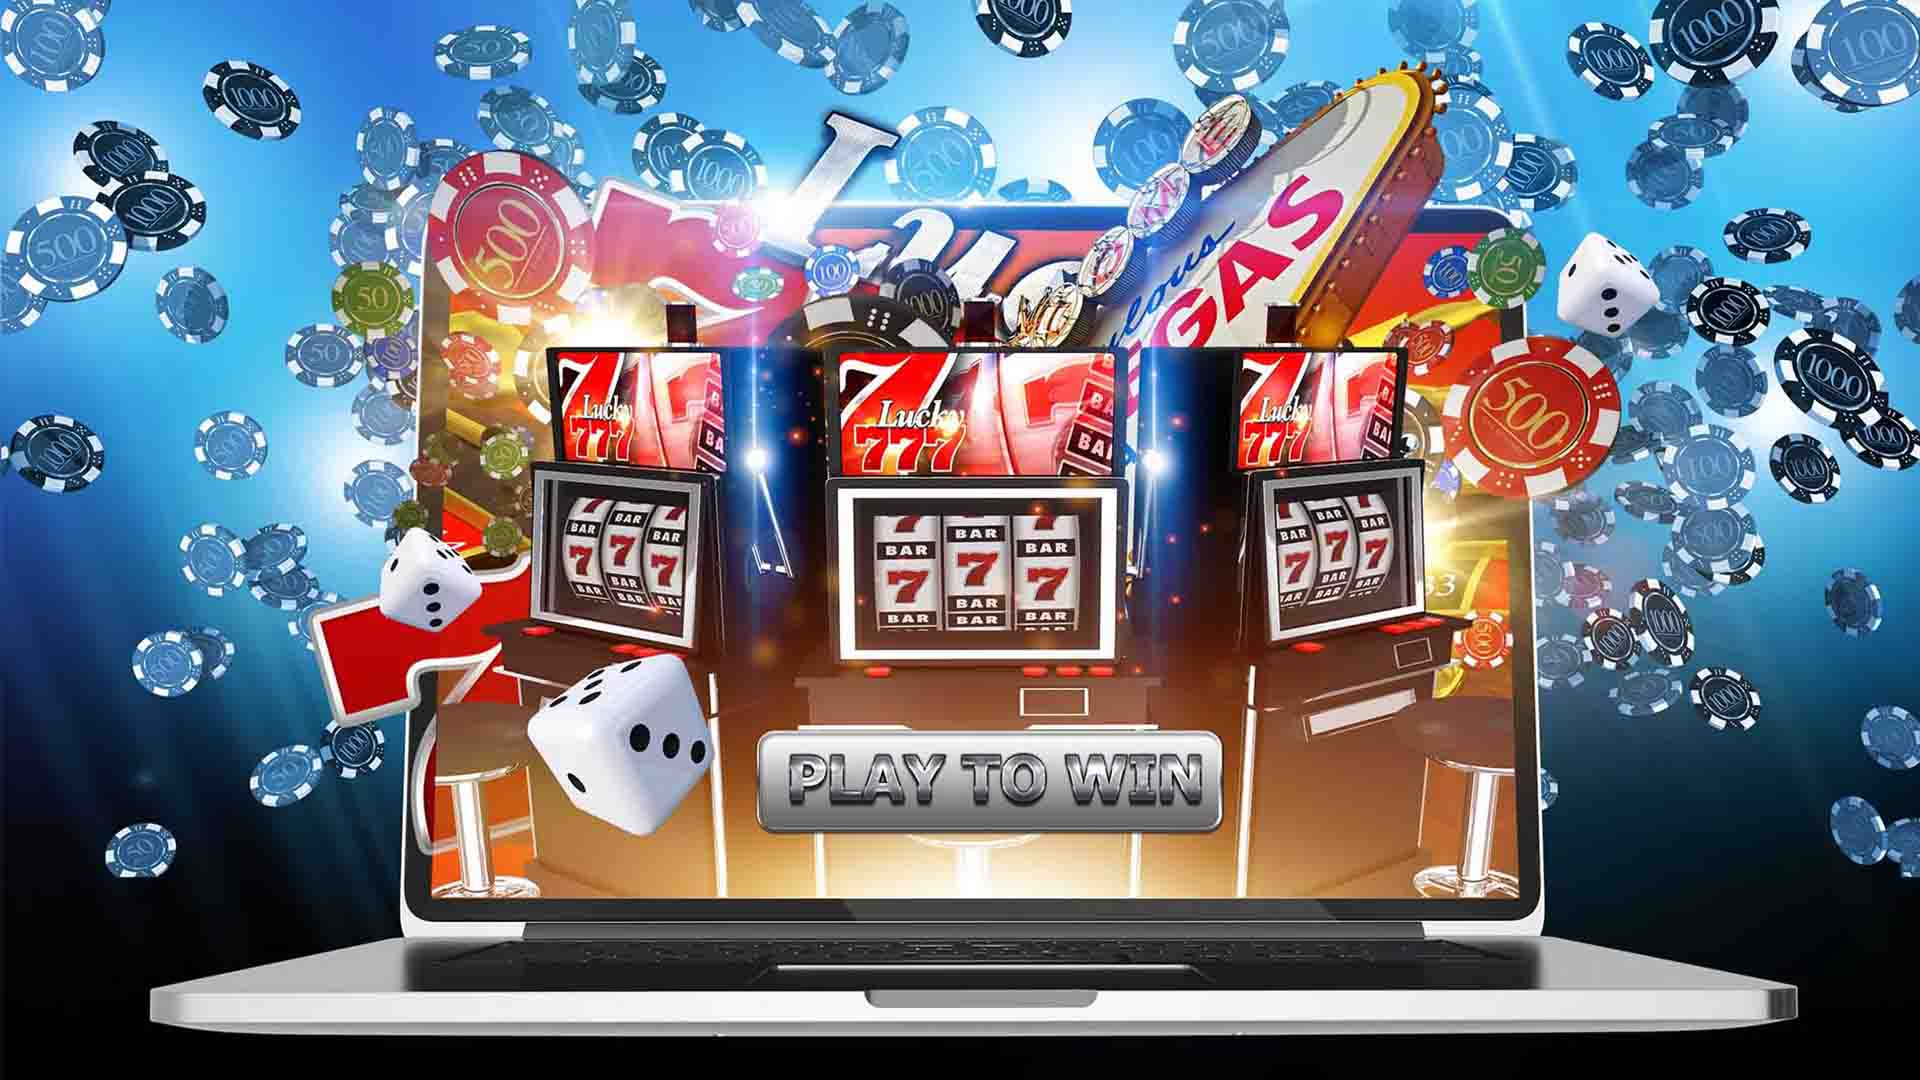 New to Online Casino Gambling? Find the BEST DEAL with us and start!